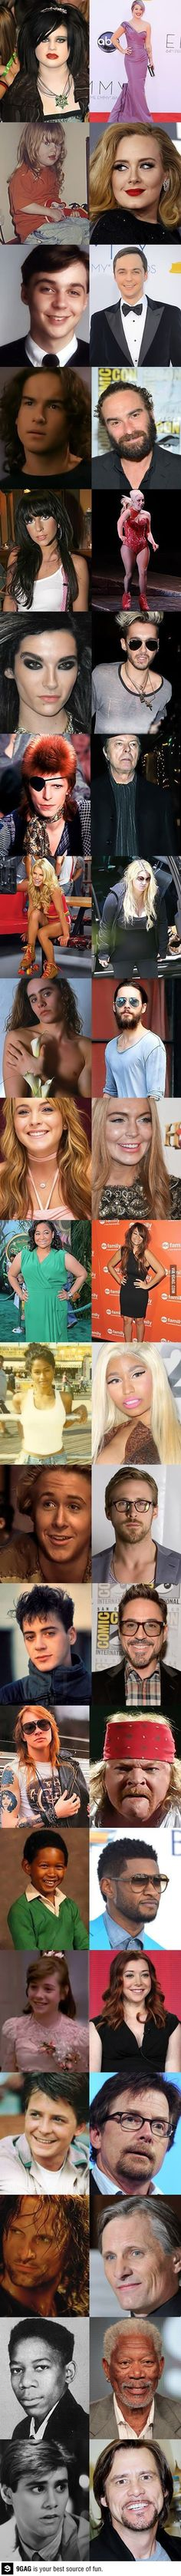 Celebrities change over time...I'm sorry, I just can't seem to see the difference. (lol)